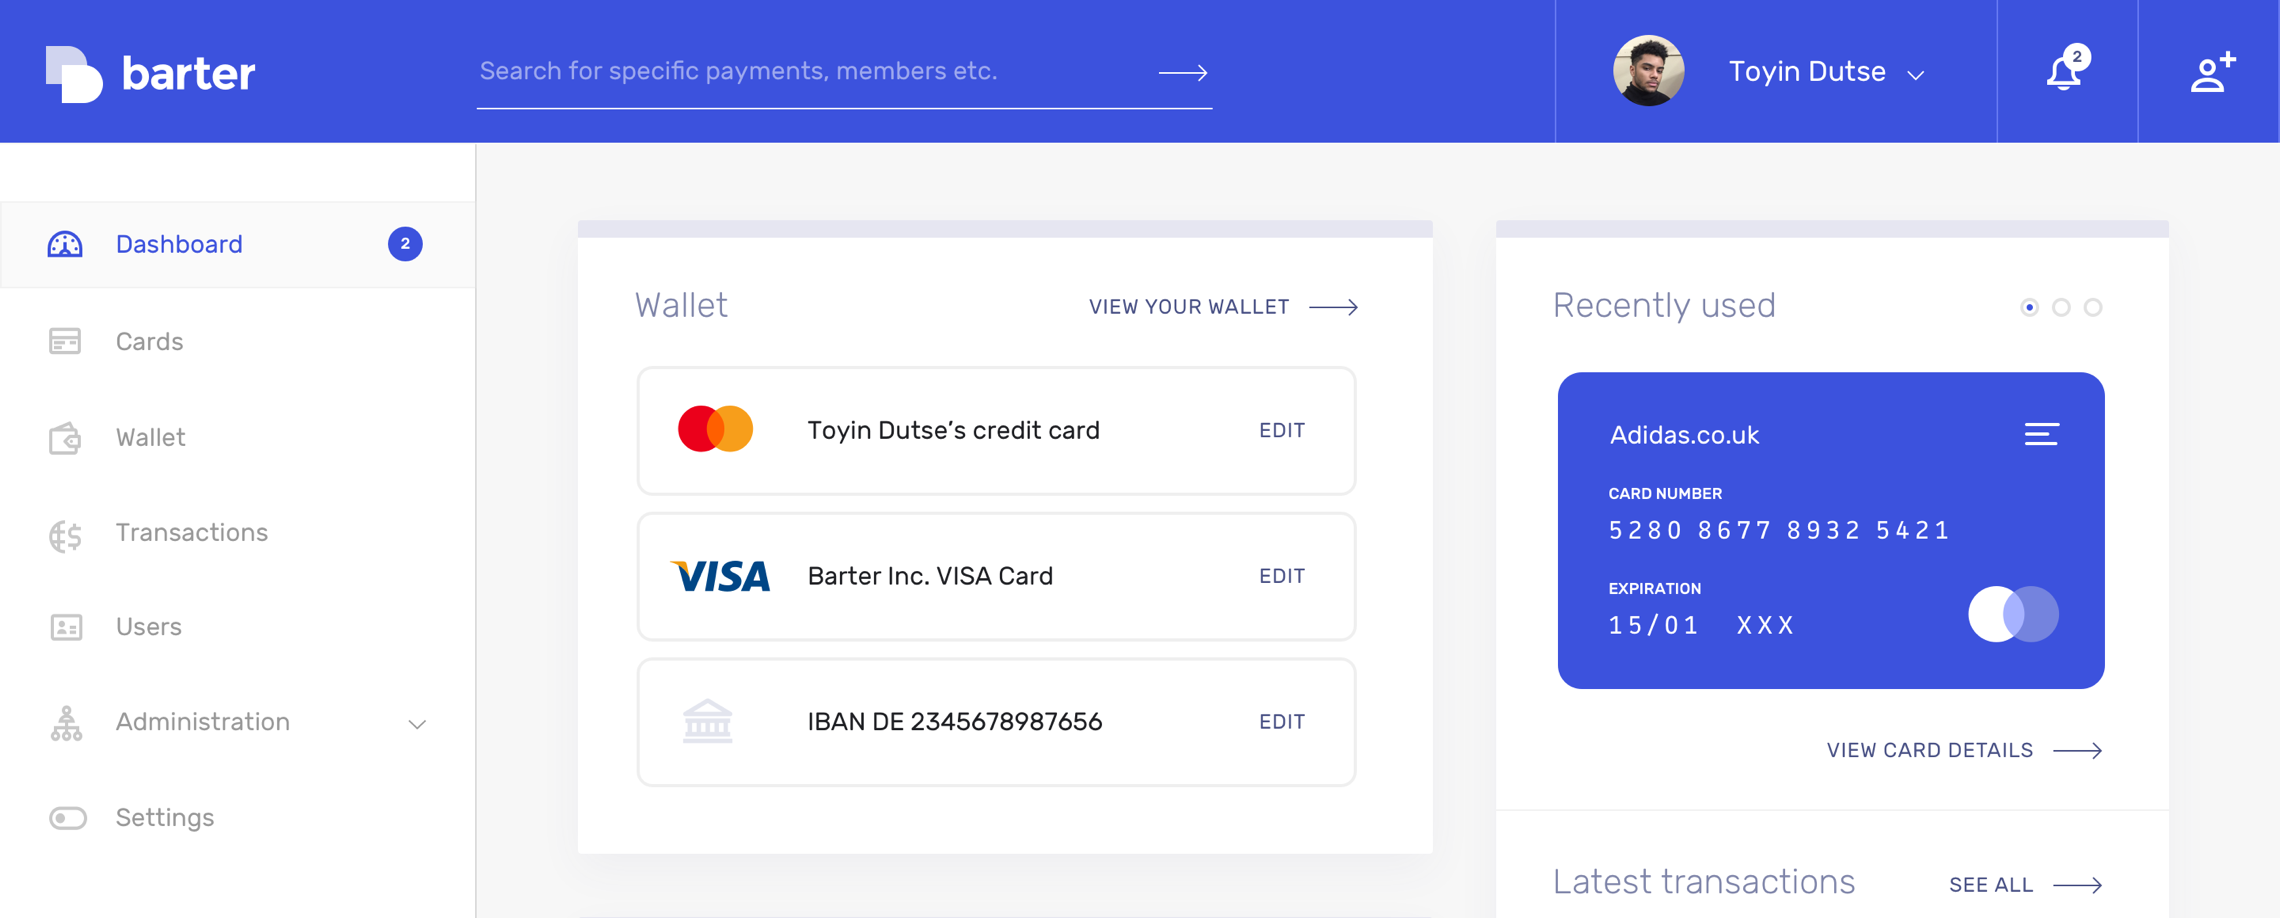 How to Get FREE Virtual VISA Credit Card from GetBarter CO